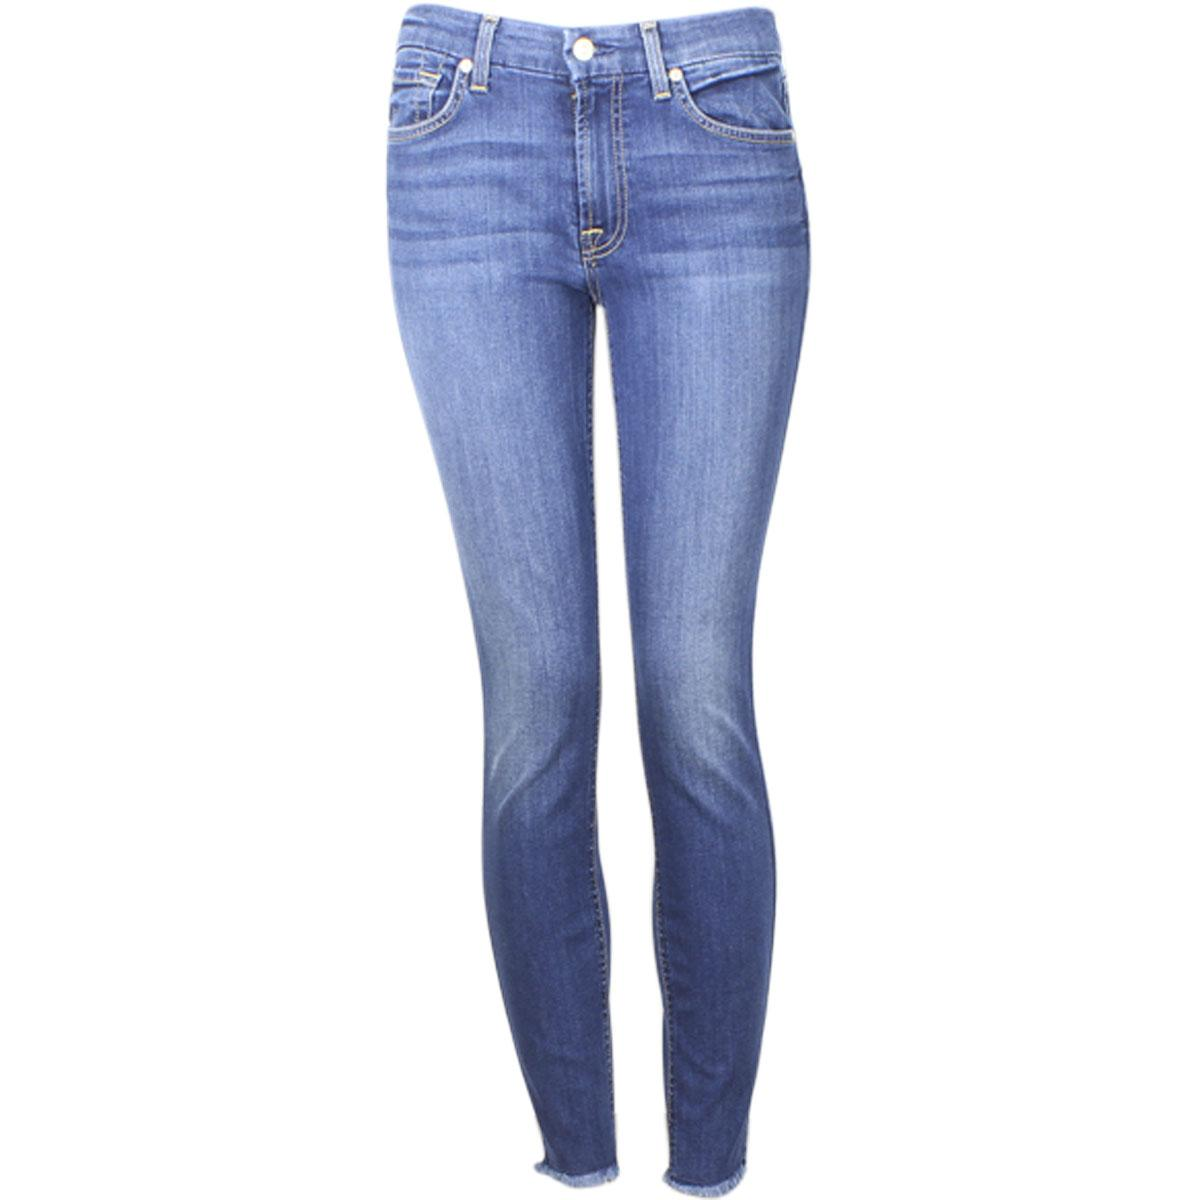 Image of 7 For All Mankind Women's (B)Air Denim The Ankle Skinny Raw Hem Jeans - Blue - 26 (1/2)